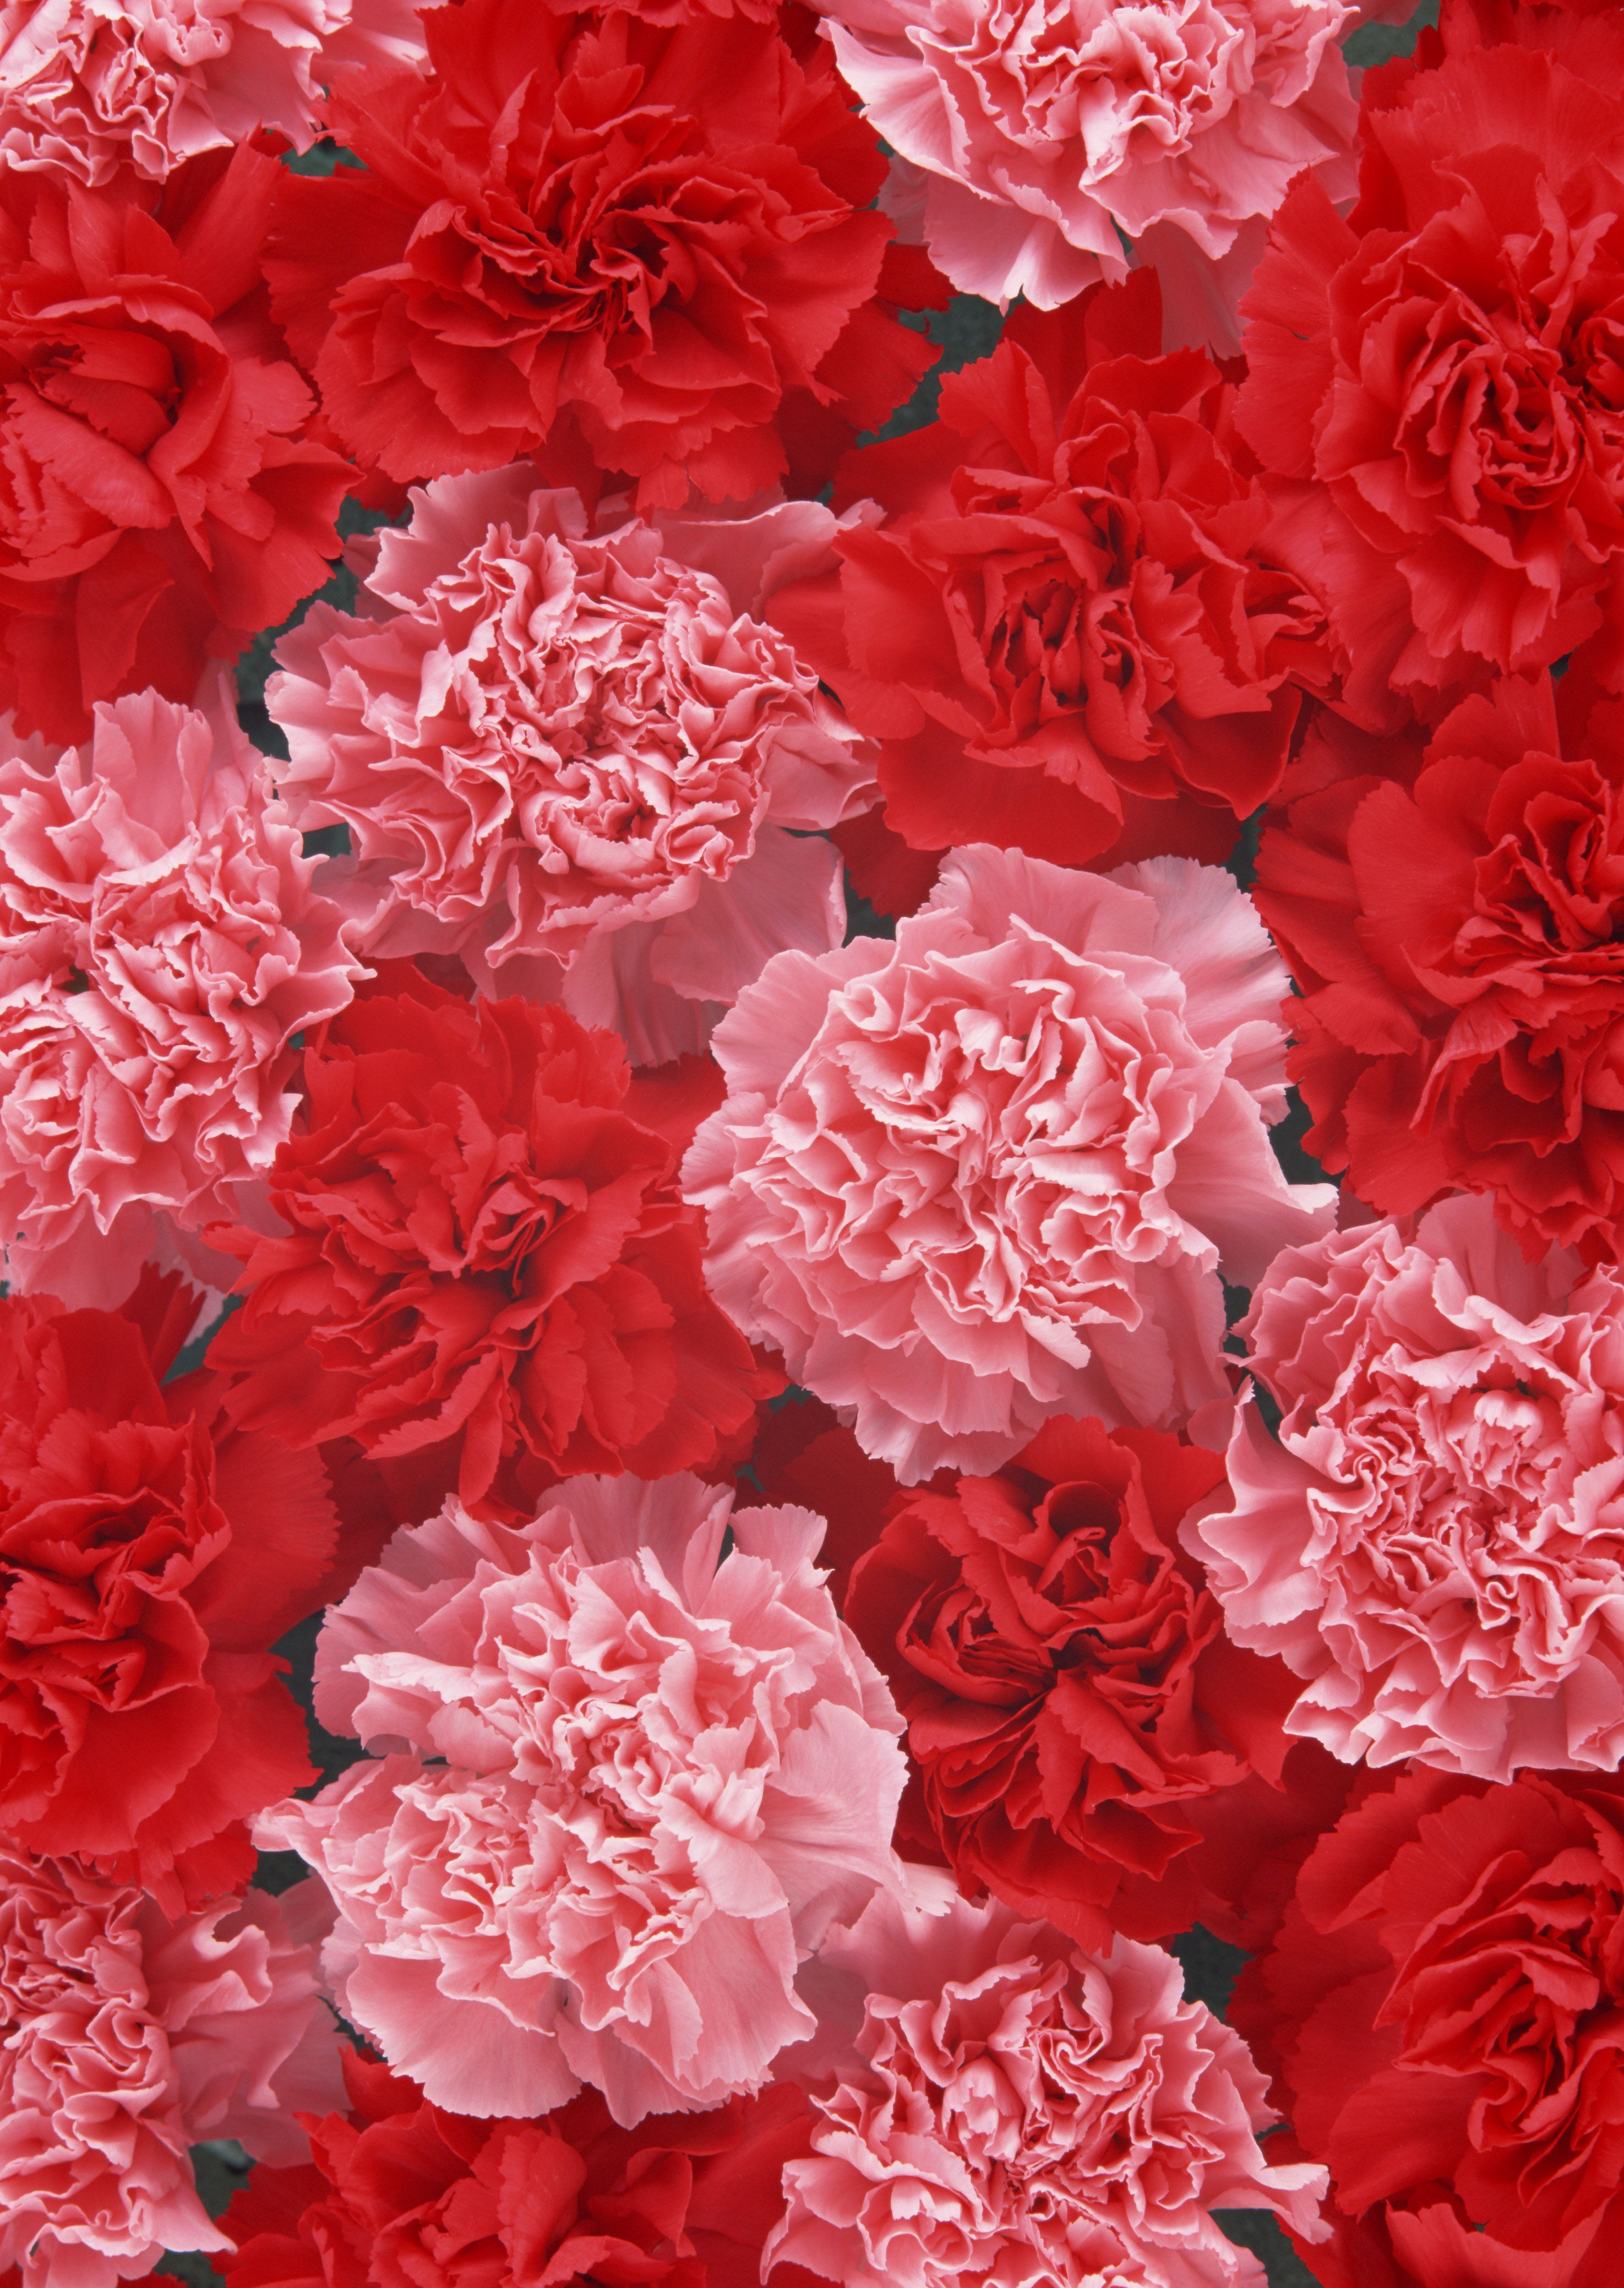 9 Reasons Carnations Are Actually The Best Carnation Flower Carnation Flower Photos Carnation Colors